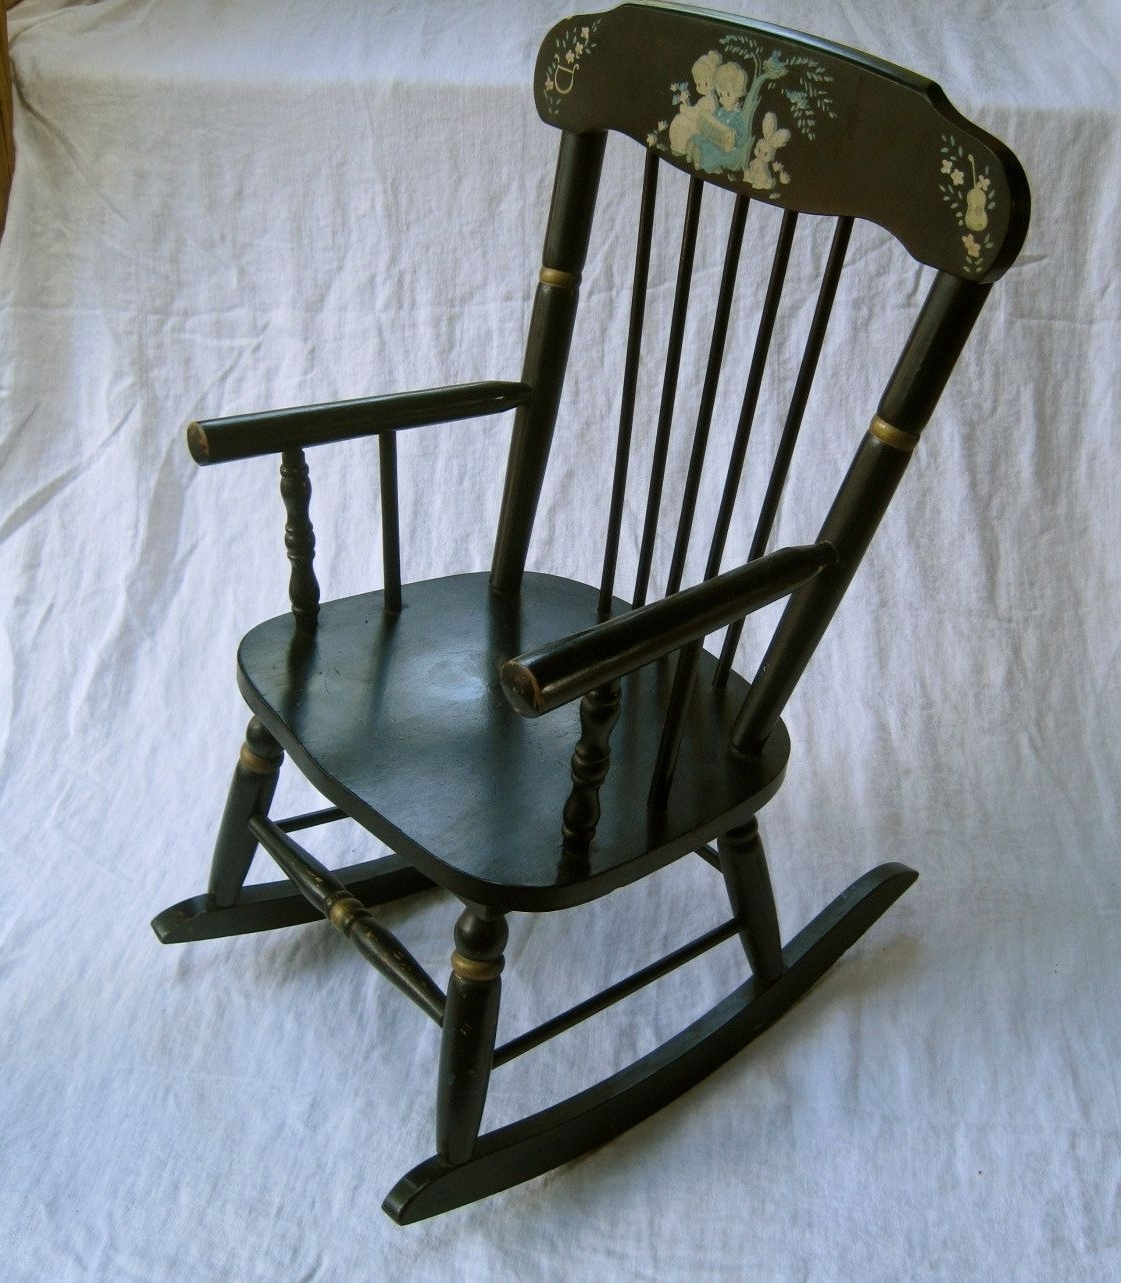 Widely Used Children's Musical Rocking Chair – Vintage, Maderamsdell (View 7 of 15)